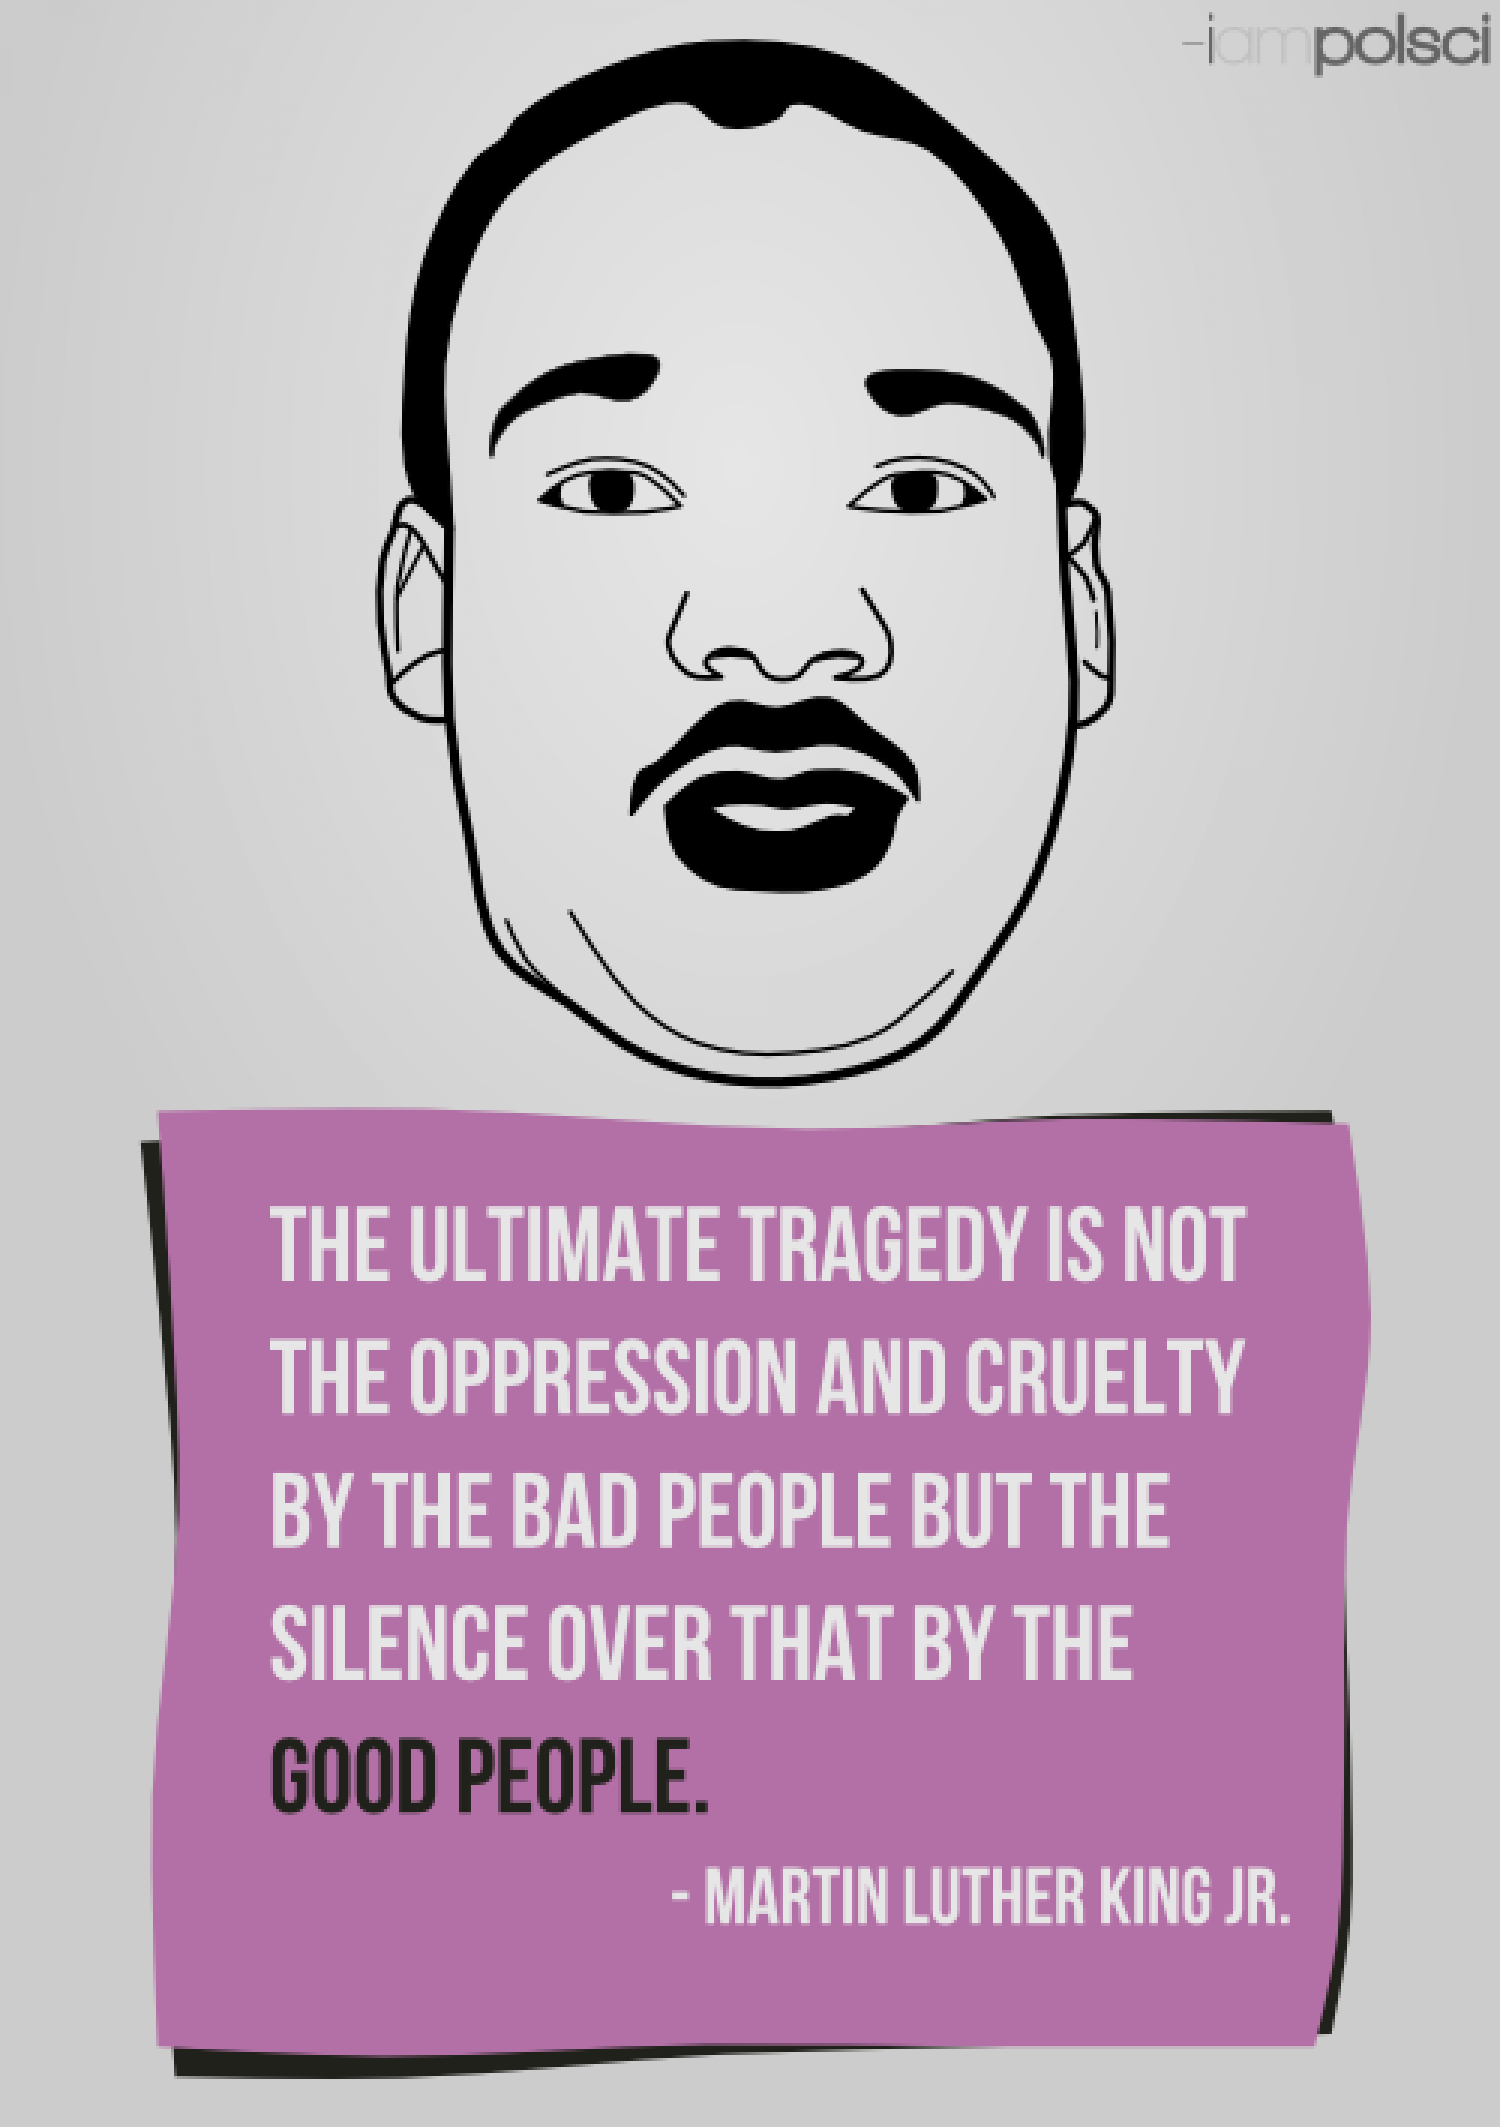 The Ultimate Tragedy Infographic